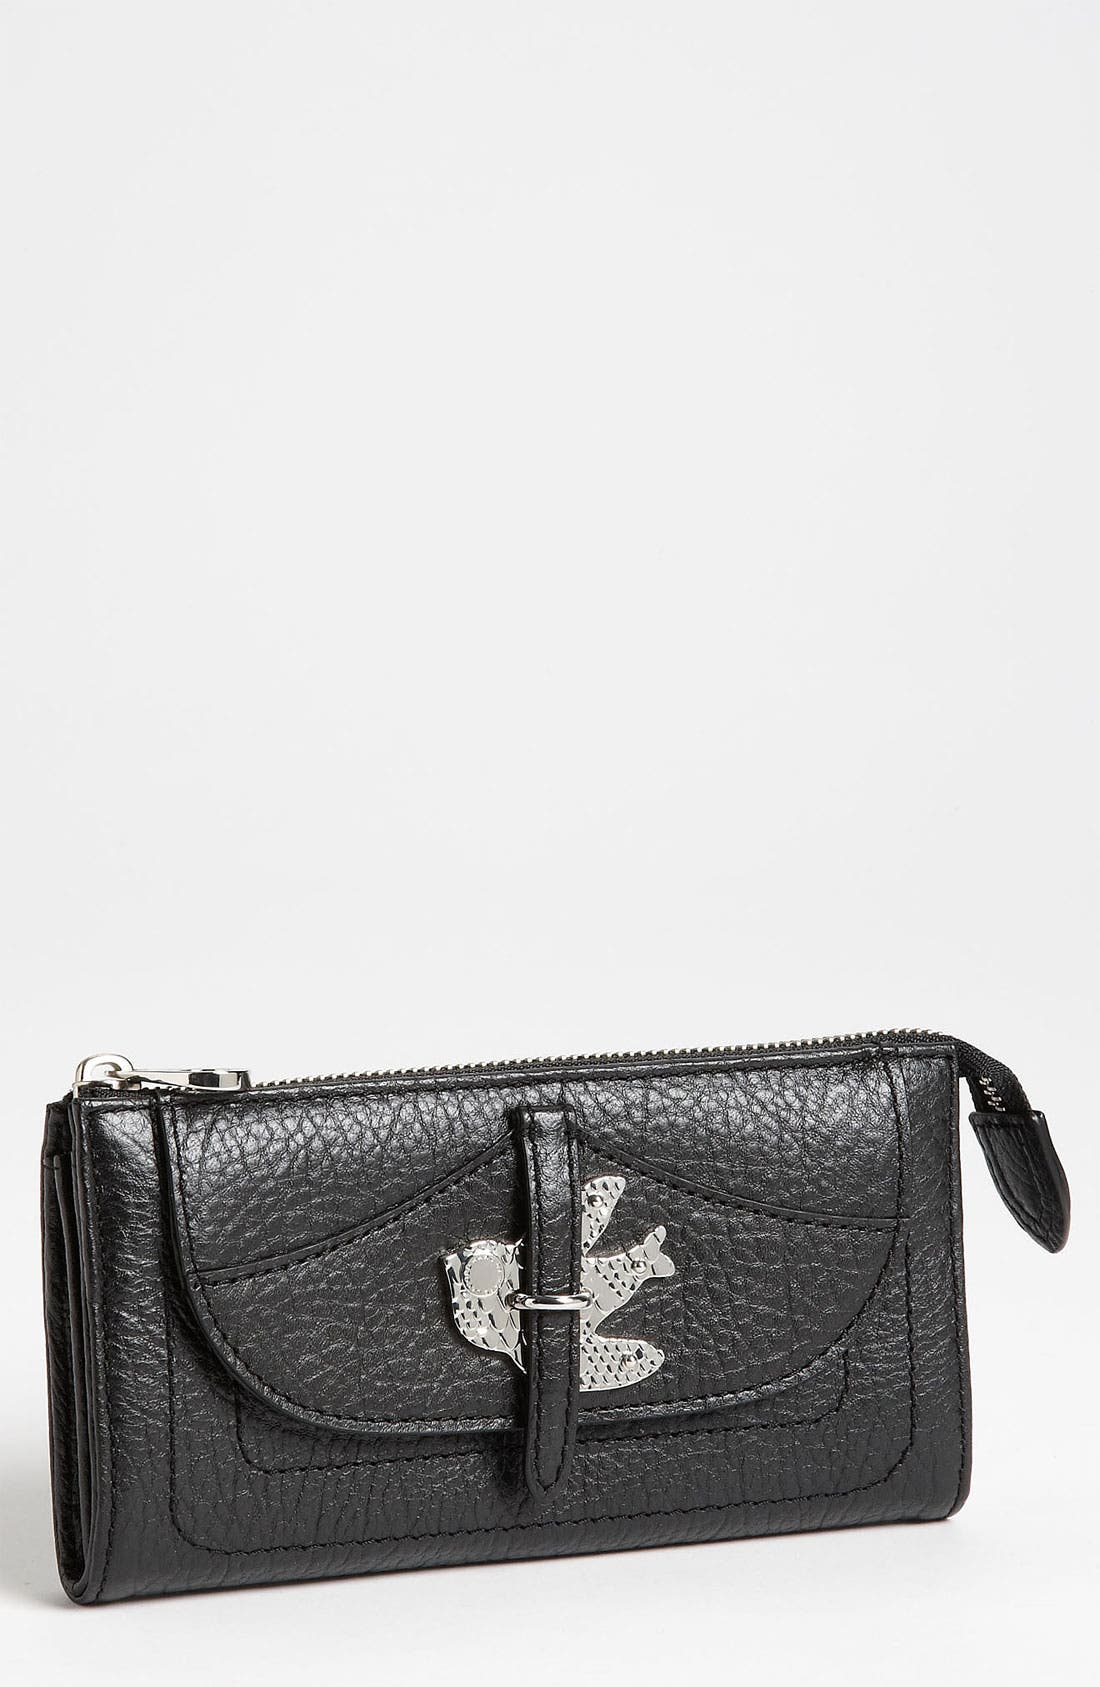 Main Image - MARC BY MARC JACOBS 'Petal to the Metal' Clutch